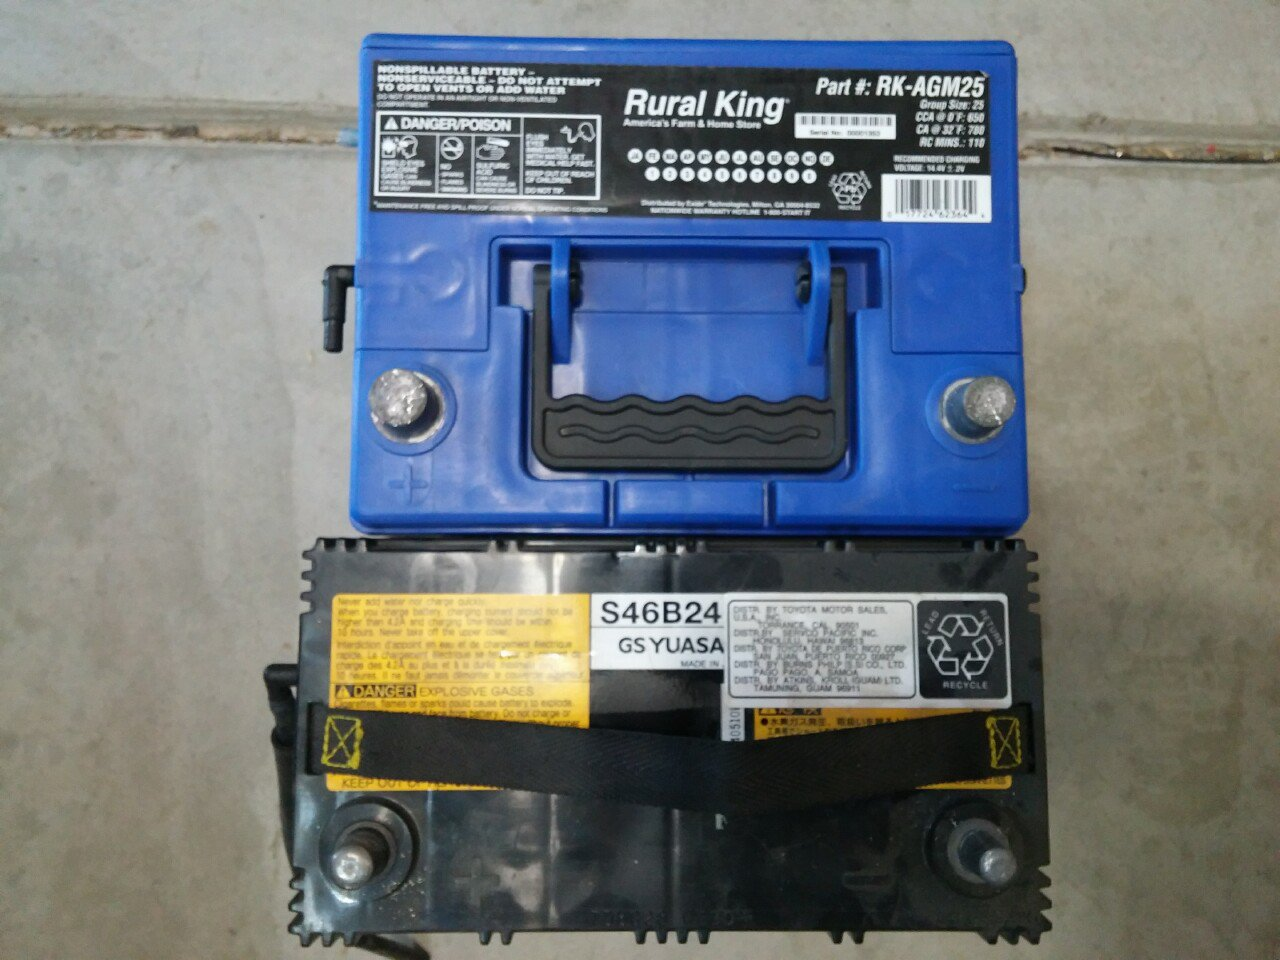 Replace Oem 12v Battery With Group 25 Agm Priuschat 2008 Prius Wiring Diagram Positive Terminal I Bought 90982 05054 It Is The Closest Match To Original In Sae Size And Latest Revision